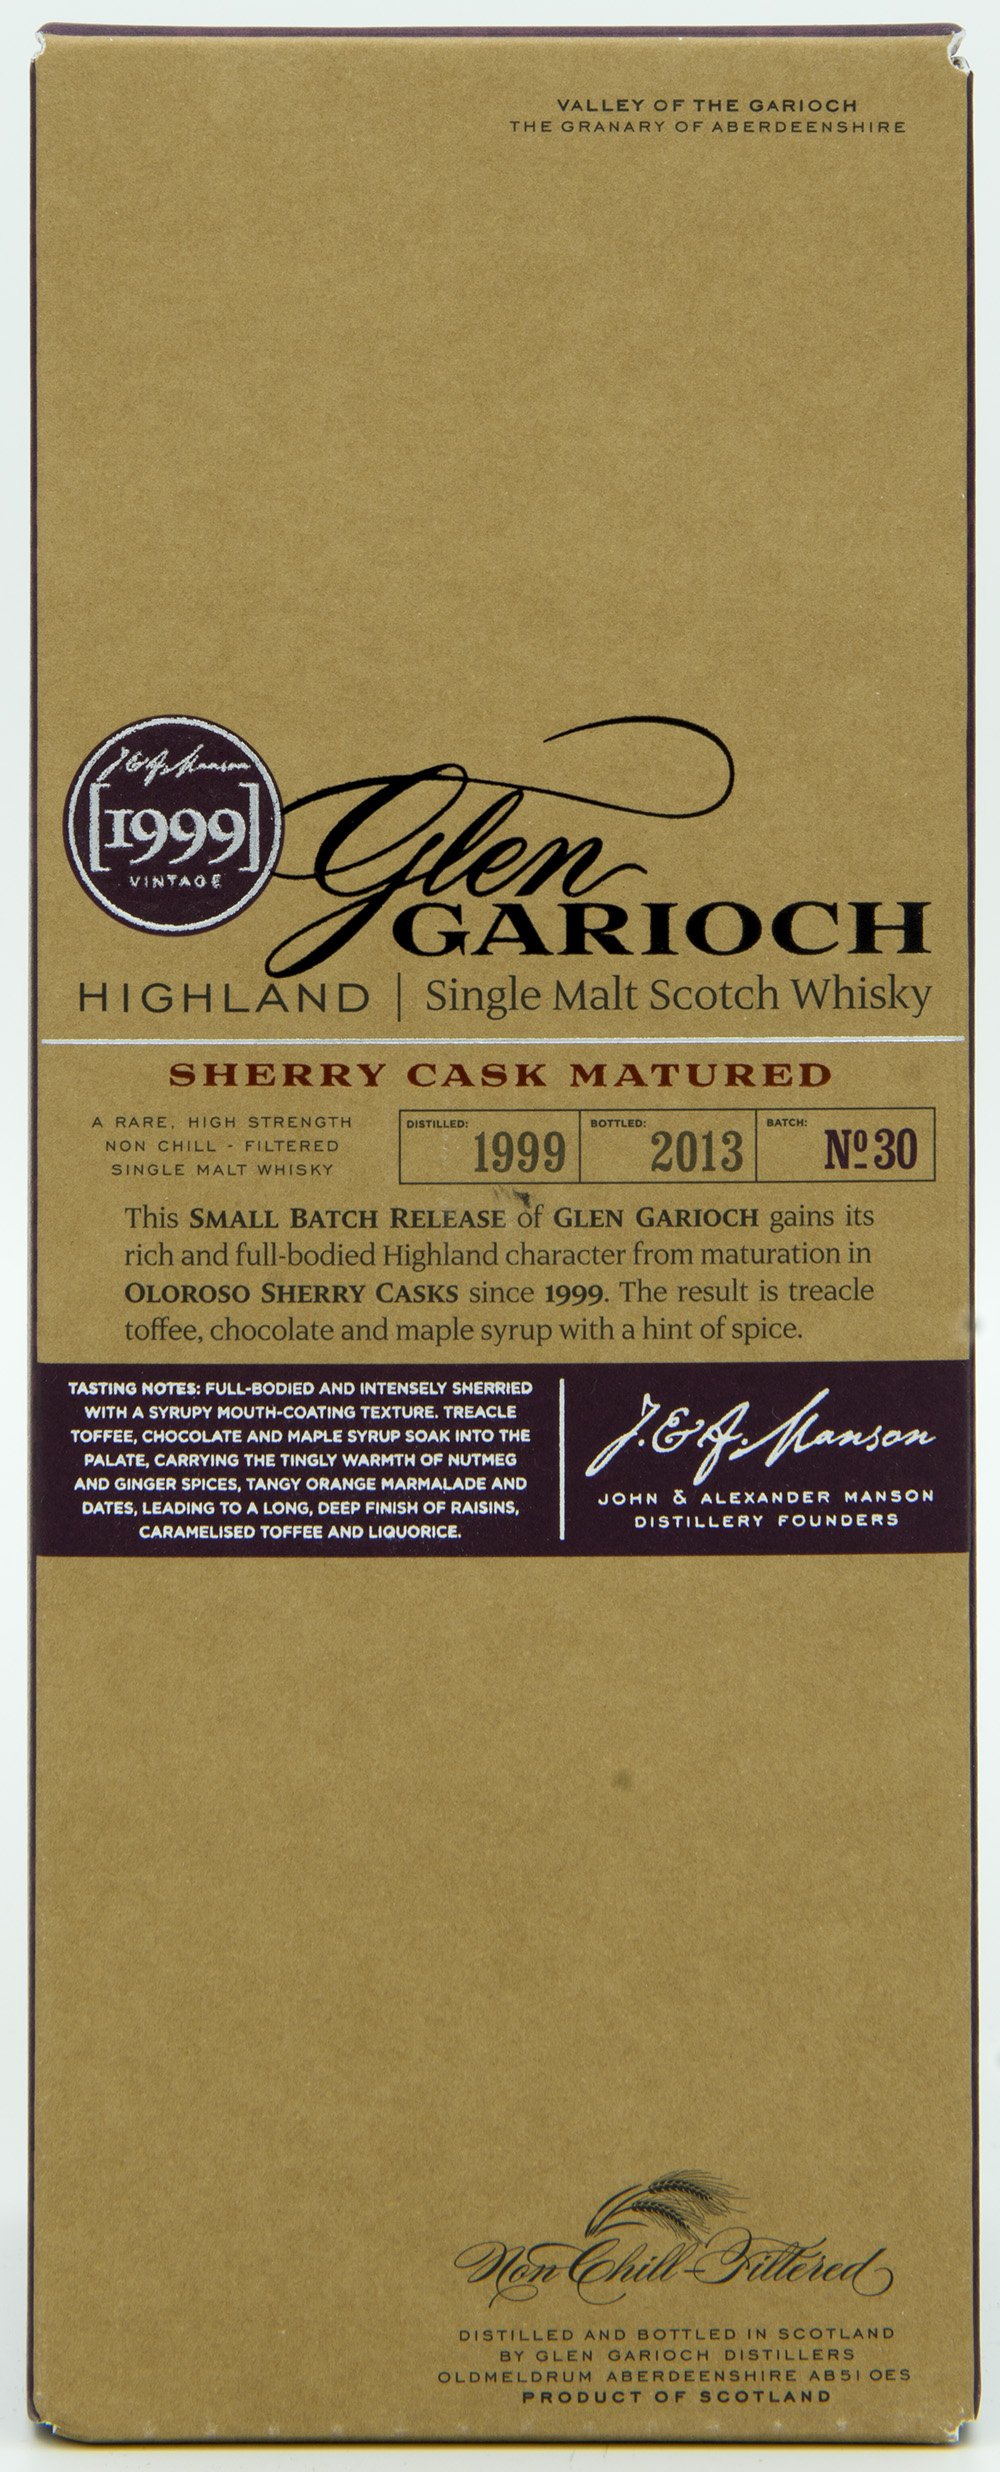 Billede: DSC_6559 GlenGarioch Batch 30 - Sherry Cask Matured 1999-2013 - box front.jpg